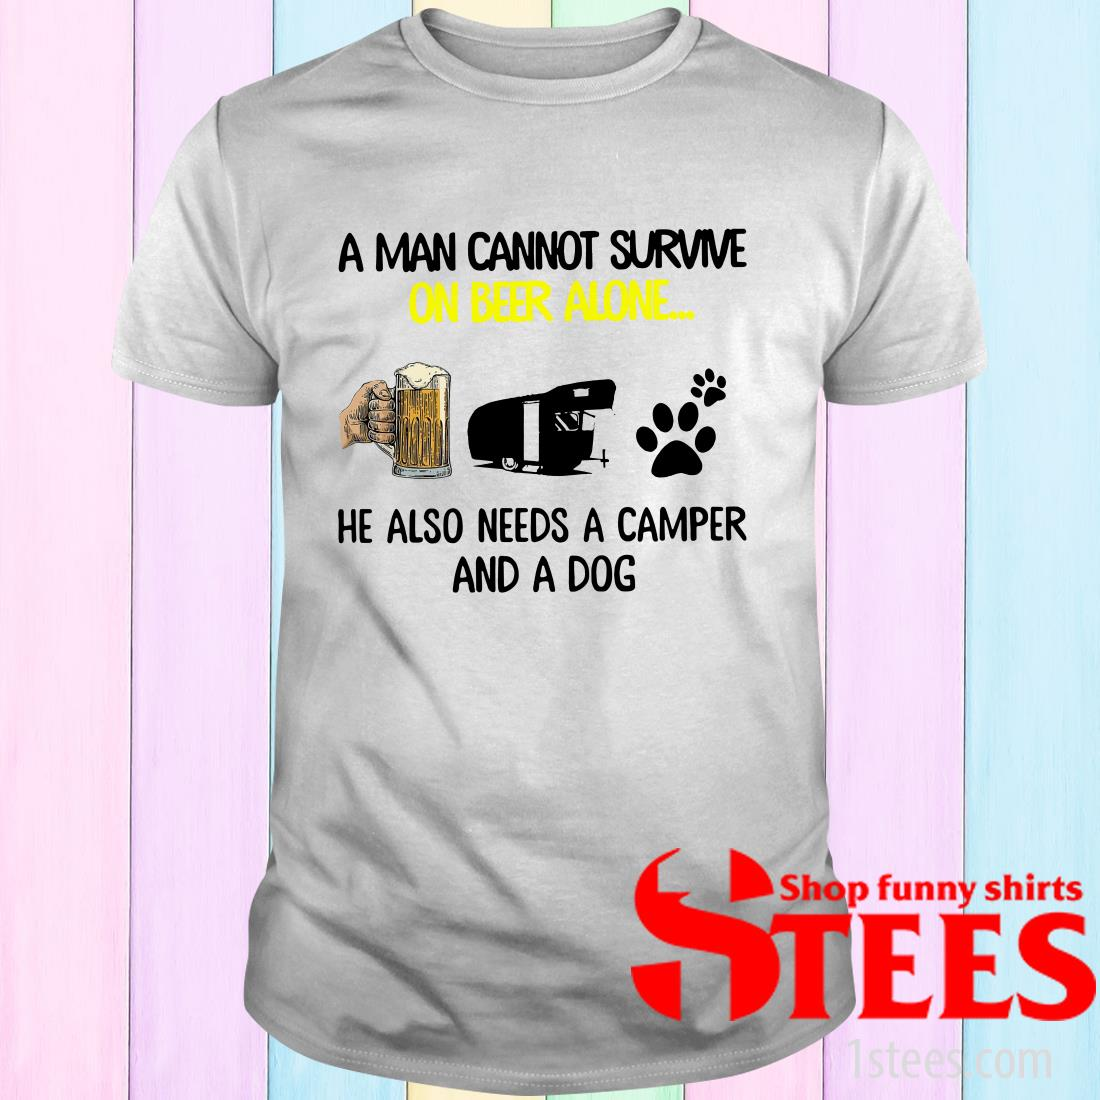 A Man Cannot Survive On Beer Alone He Also Needs Camper And A Dog Shirt